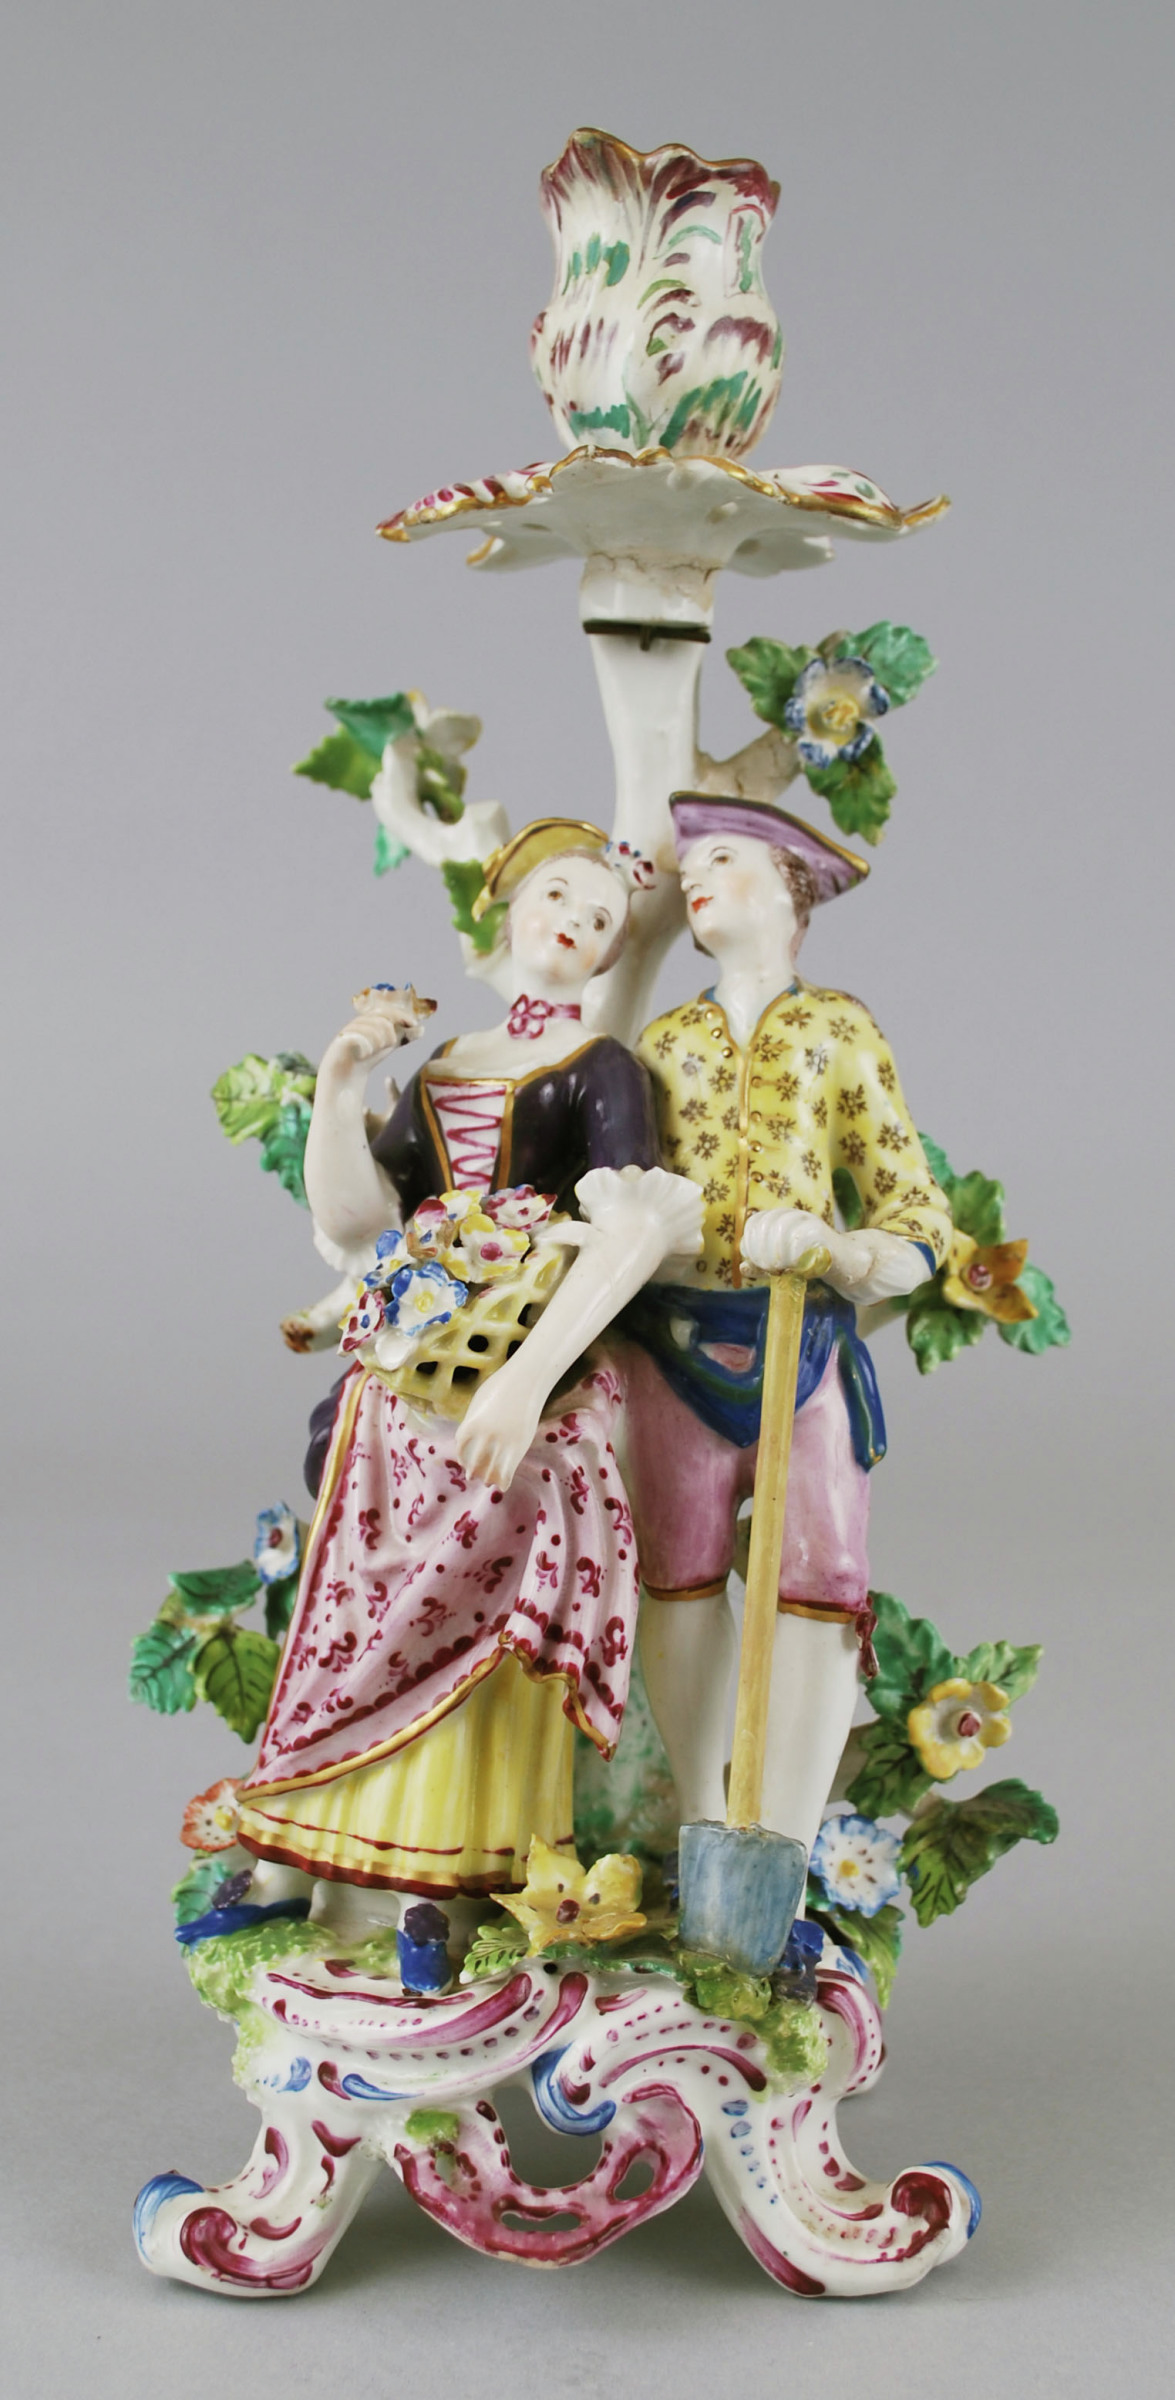 Soft-paste porcelain candlestick comprised of a figural group featuring a male gardener with spade and his female companion holding a basket of flowers, both wearing hats, their clothing decorated in bright enamel colors, standing on a scrolled base highlighted in blue and puce, behind them a flowering tree that extends upward to become a single candleholder and bobeche in the form of petals and highlighted in green and puce.